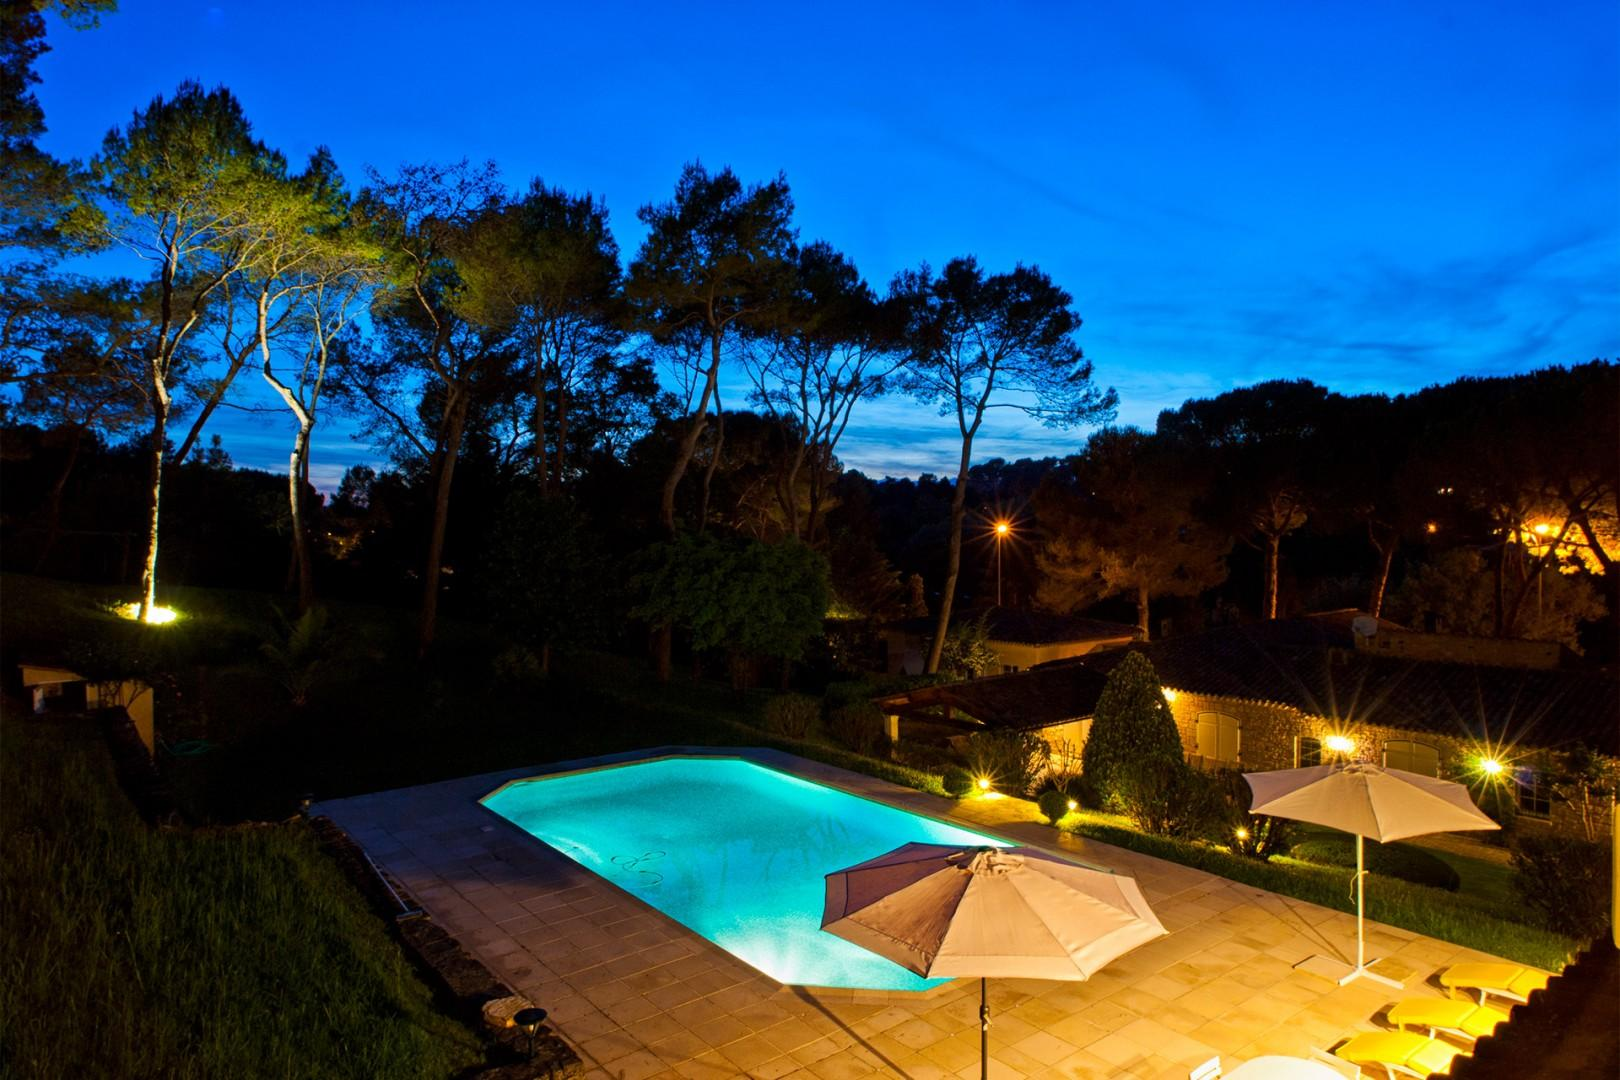 View of the pool at night from the house